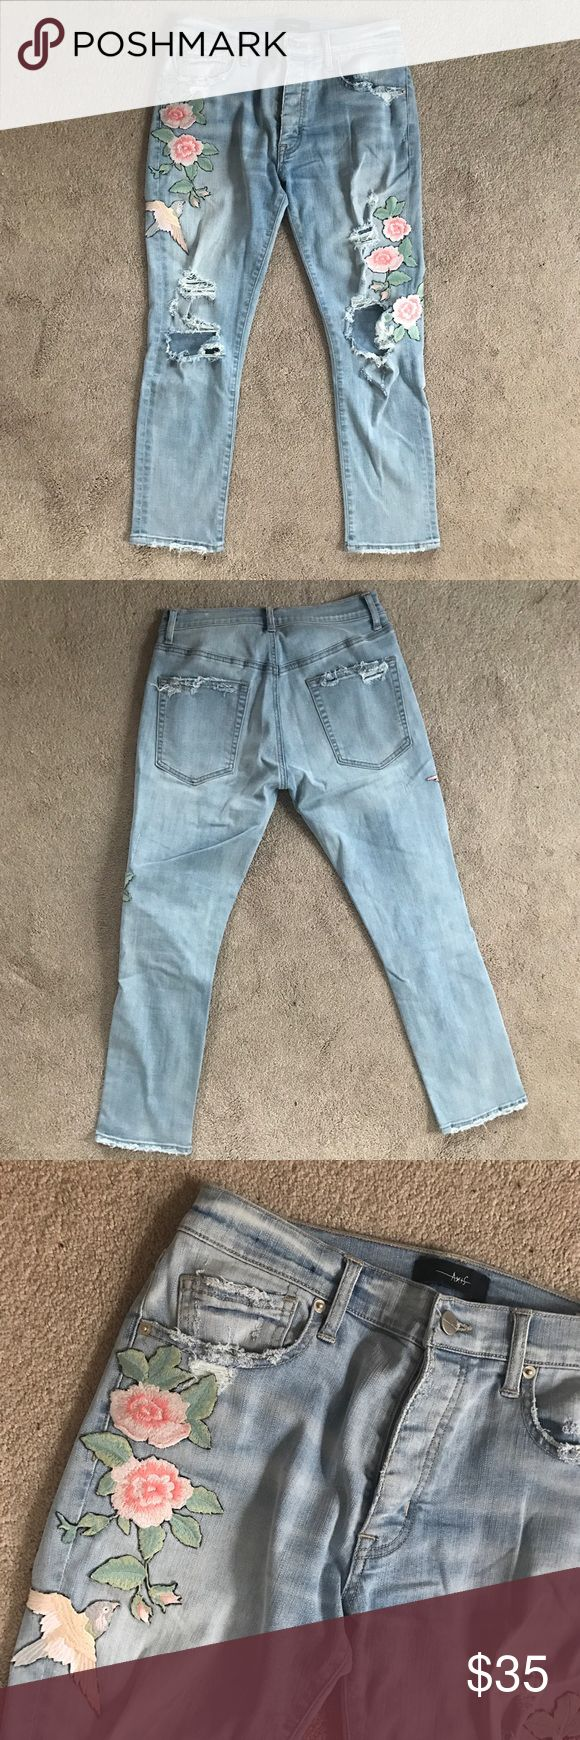 Rose Embroidered Distressed Jeans Light wash super stretch jeans featuring beautiful embroidery and distressed detailing. Revolve Clothing, Planet Blue, Free People, Urban Outfitters, Dolls Kill, Nasty Gal, ASOS, Nordstrom, Zara. Axis Jeans Ankle & Cropped